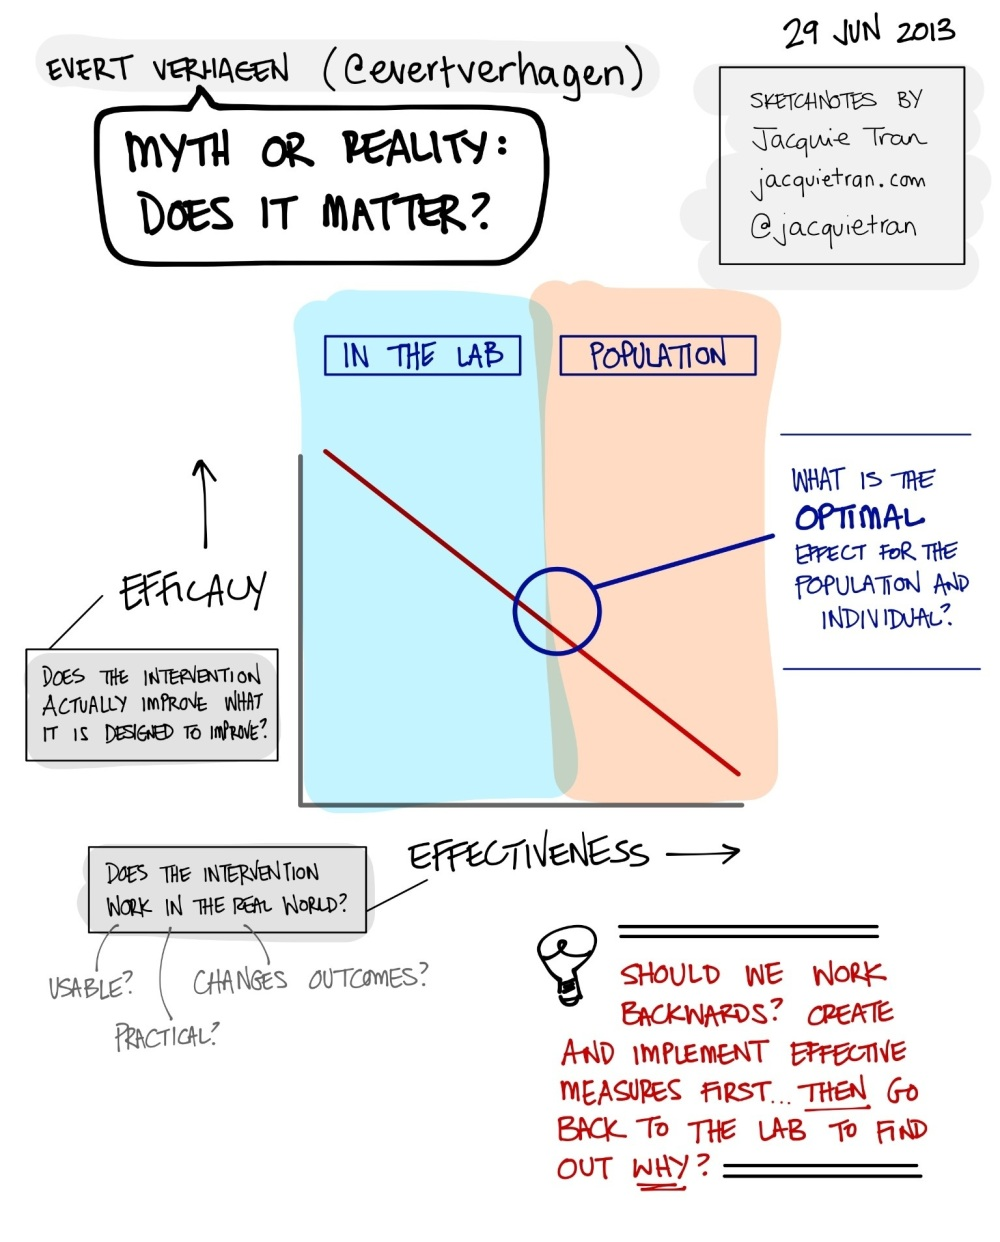 Core Stability: Myth or Reality? - by Evert Verhagen at ECSS 2013 | Sketchnotes by Jacquie Tran